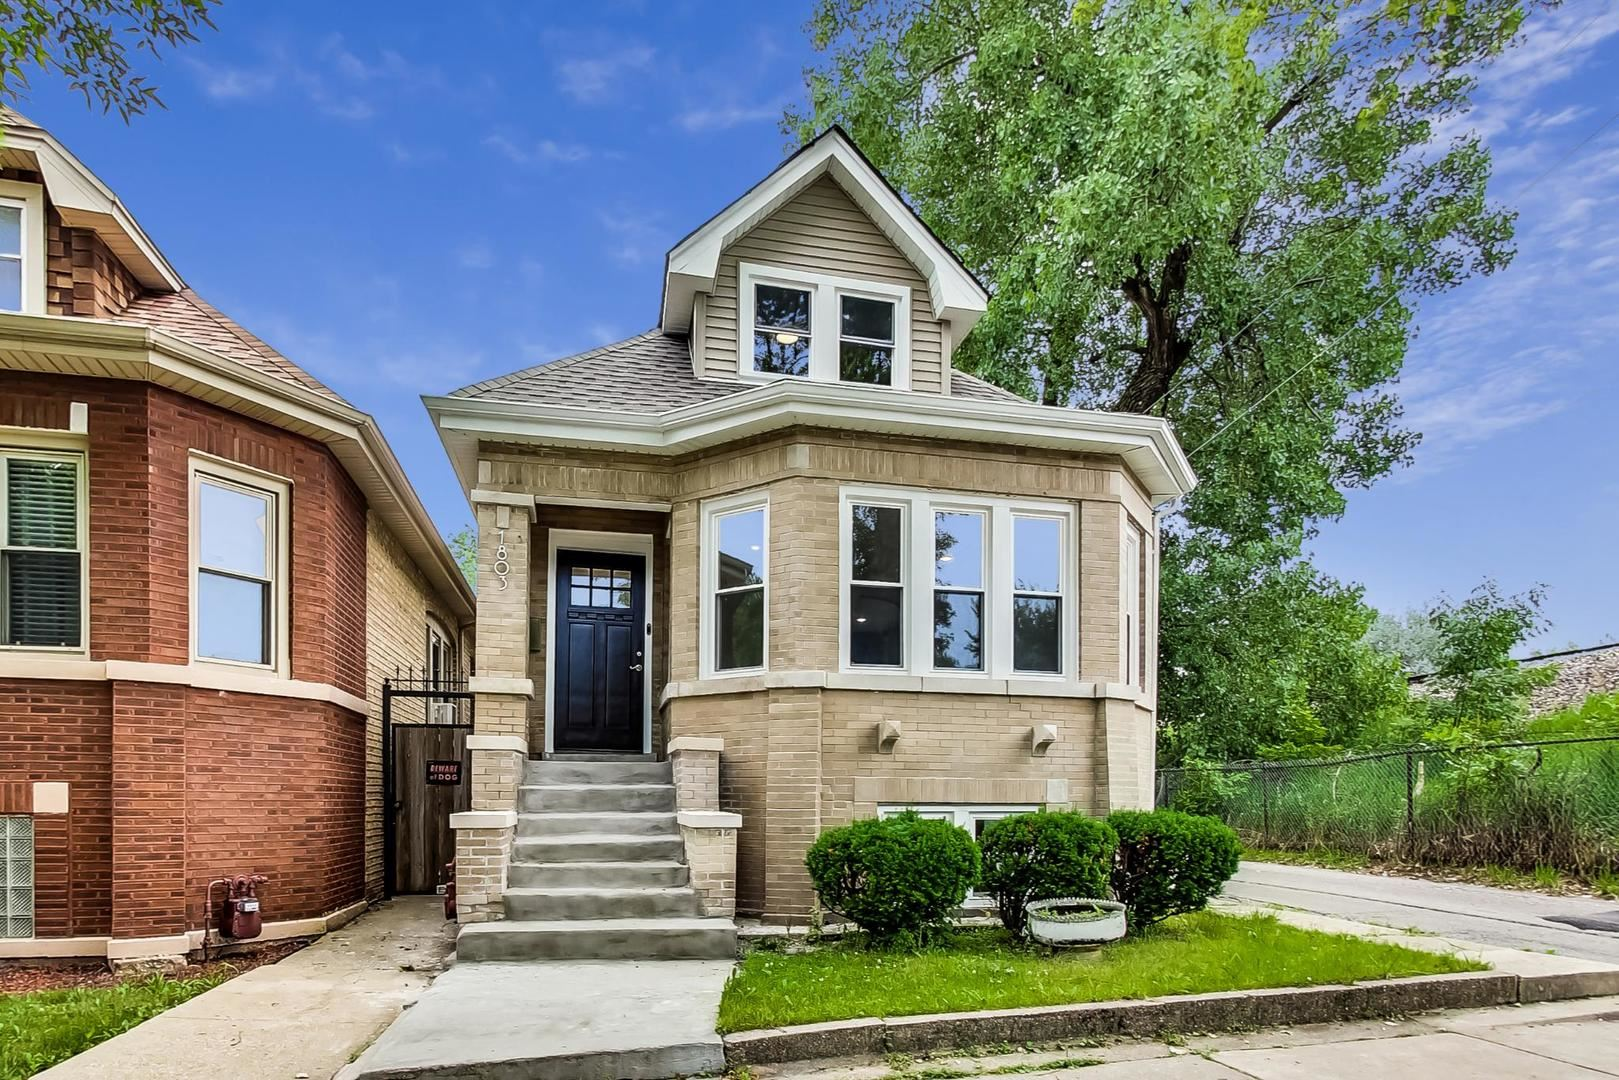 1803 N Kildare Avenue, Chicago, IL 60639 - #: 10770999